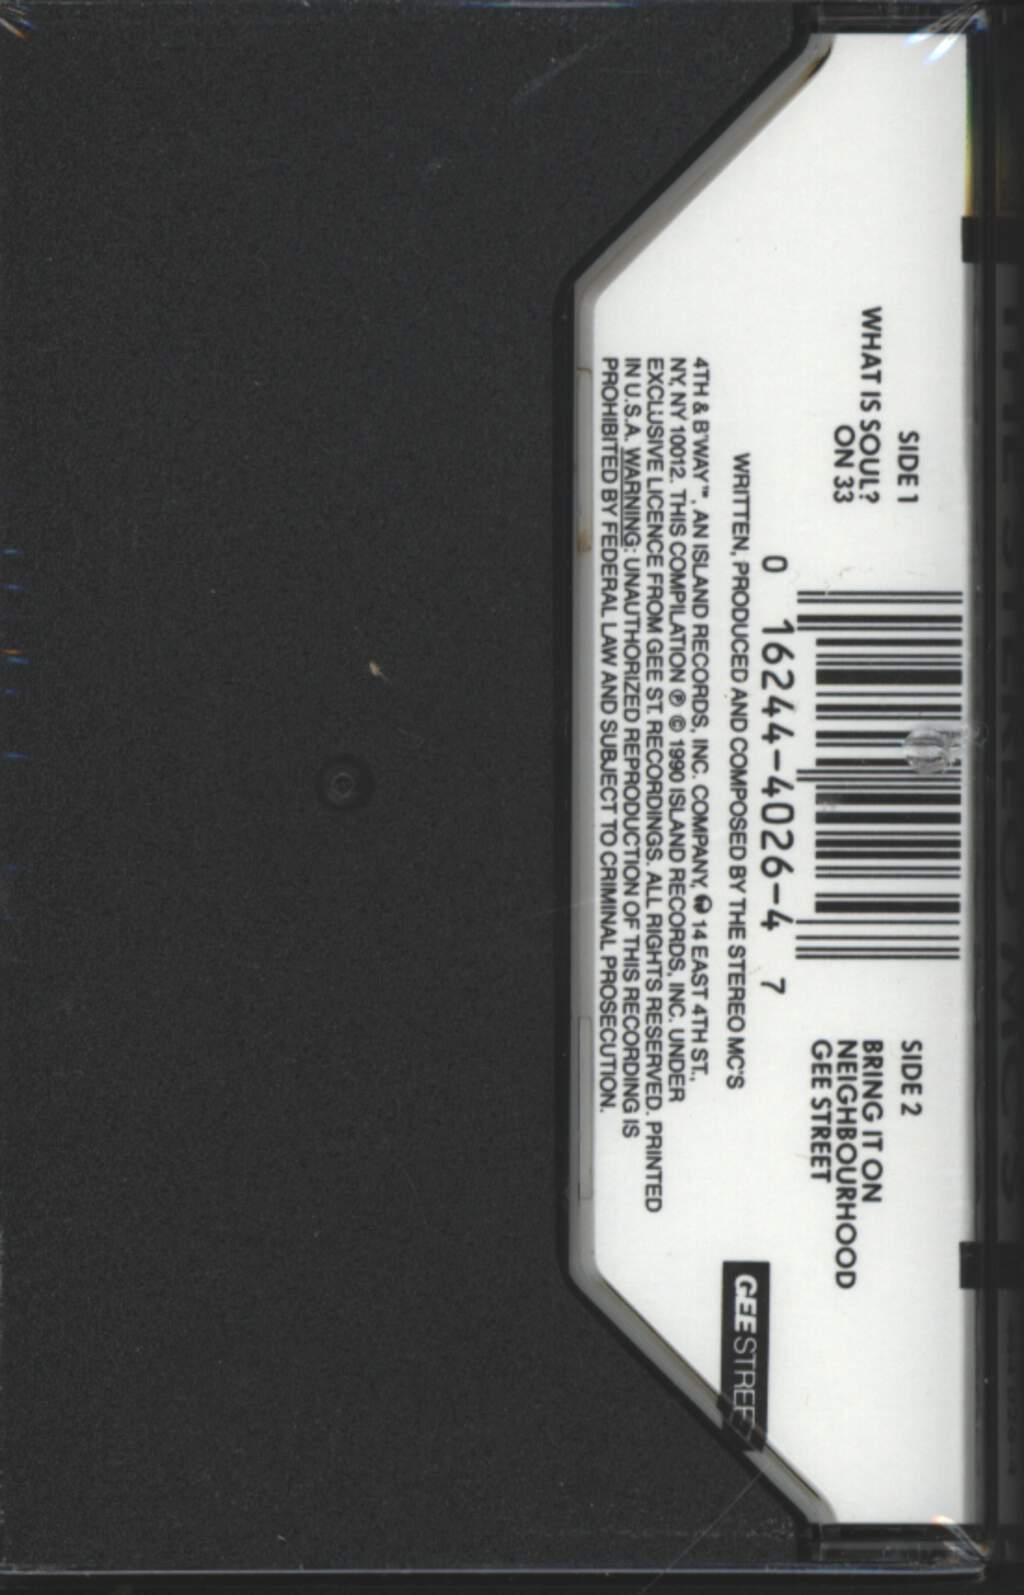 Stereo MC's: The Stereo MC's, Tape